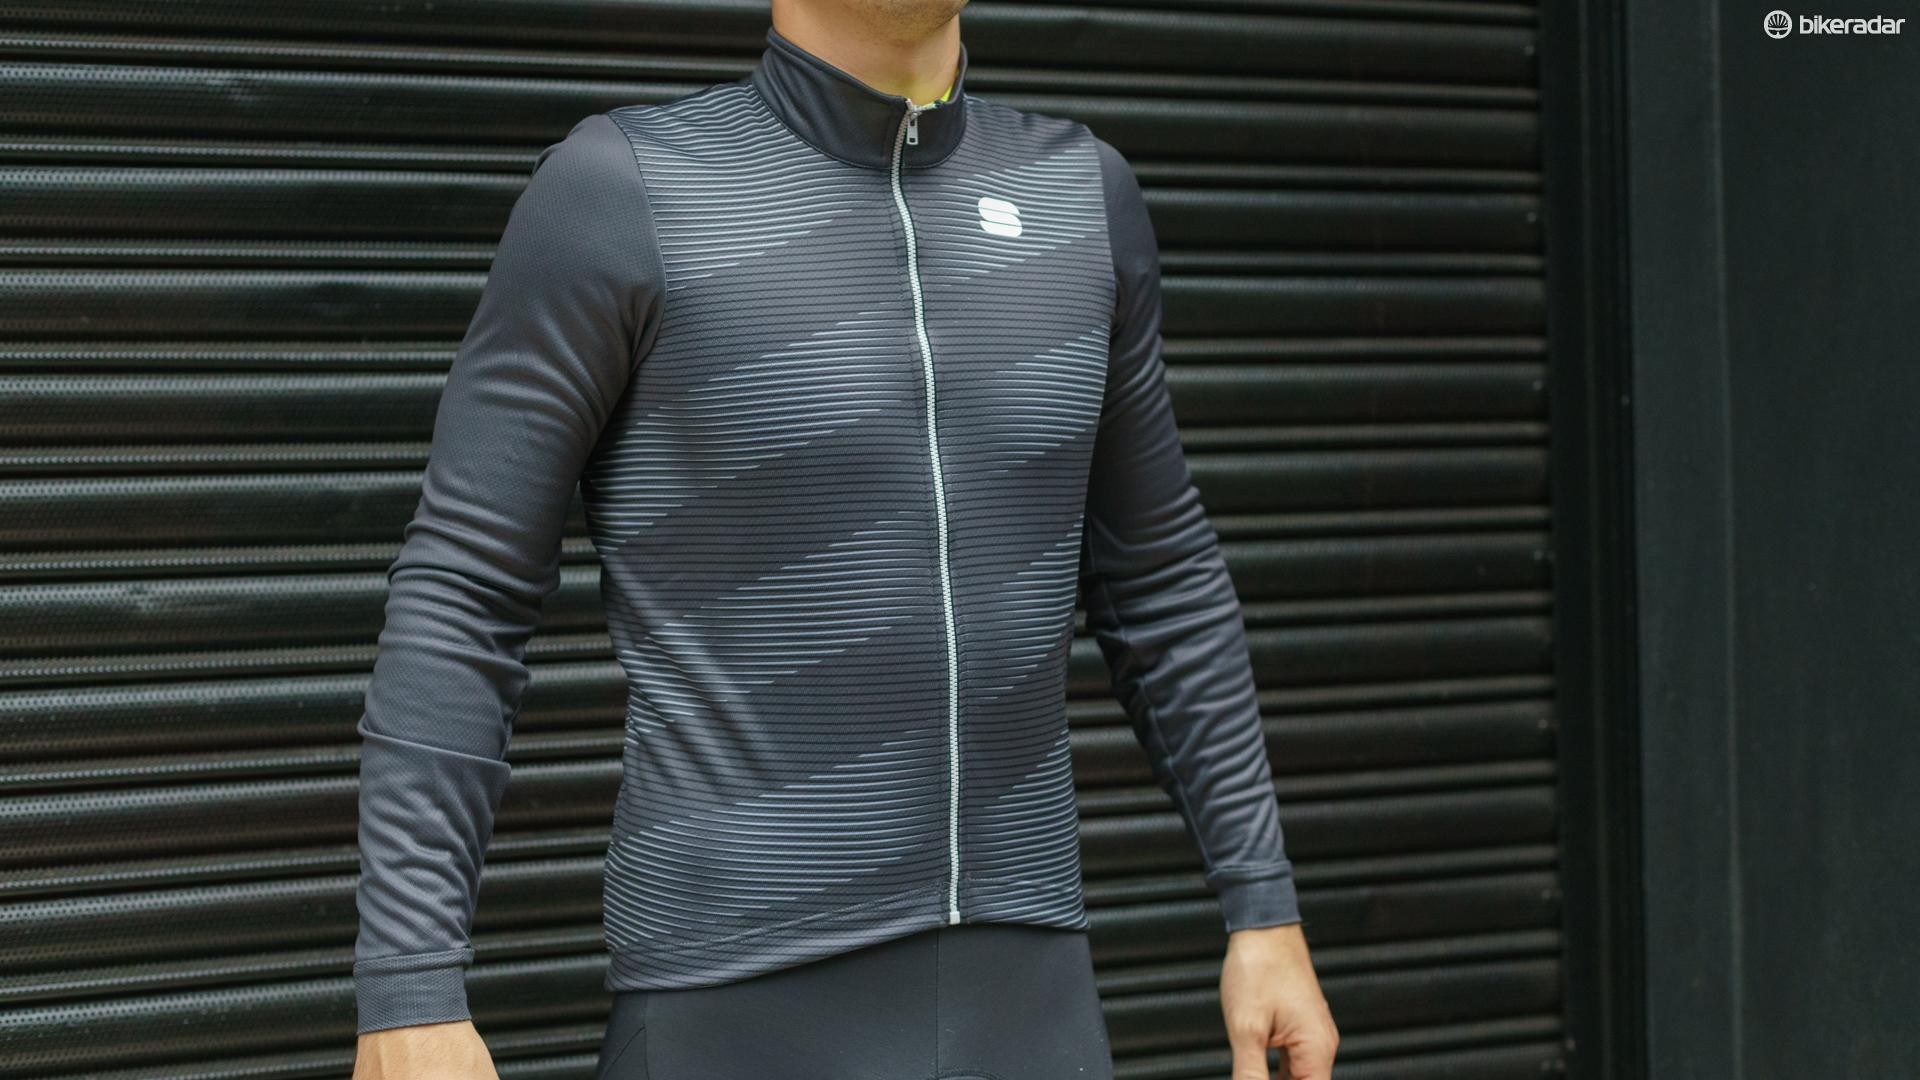 The Sportful Moire Thermal jersey